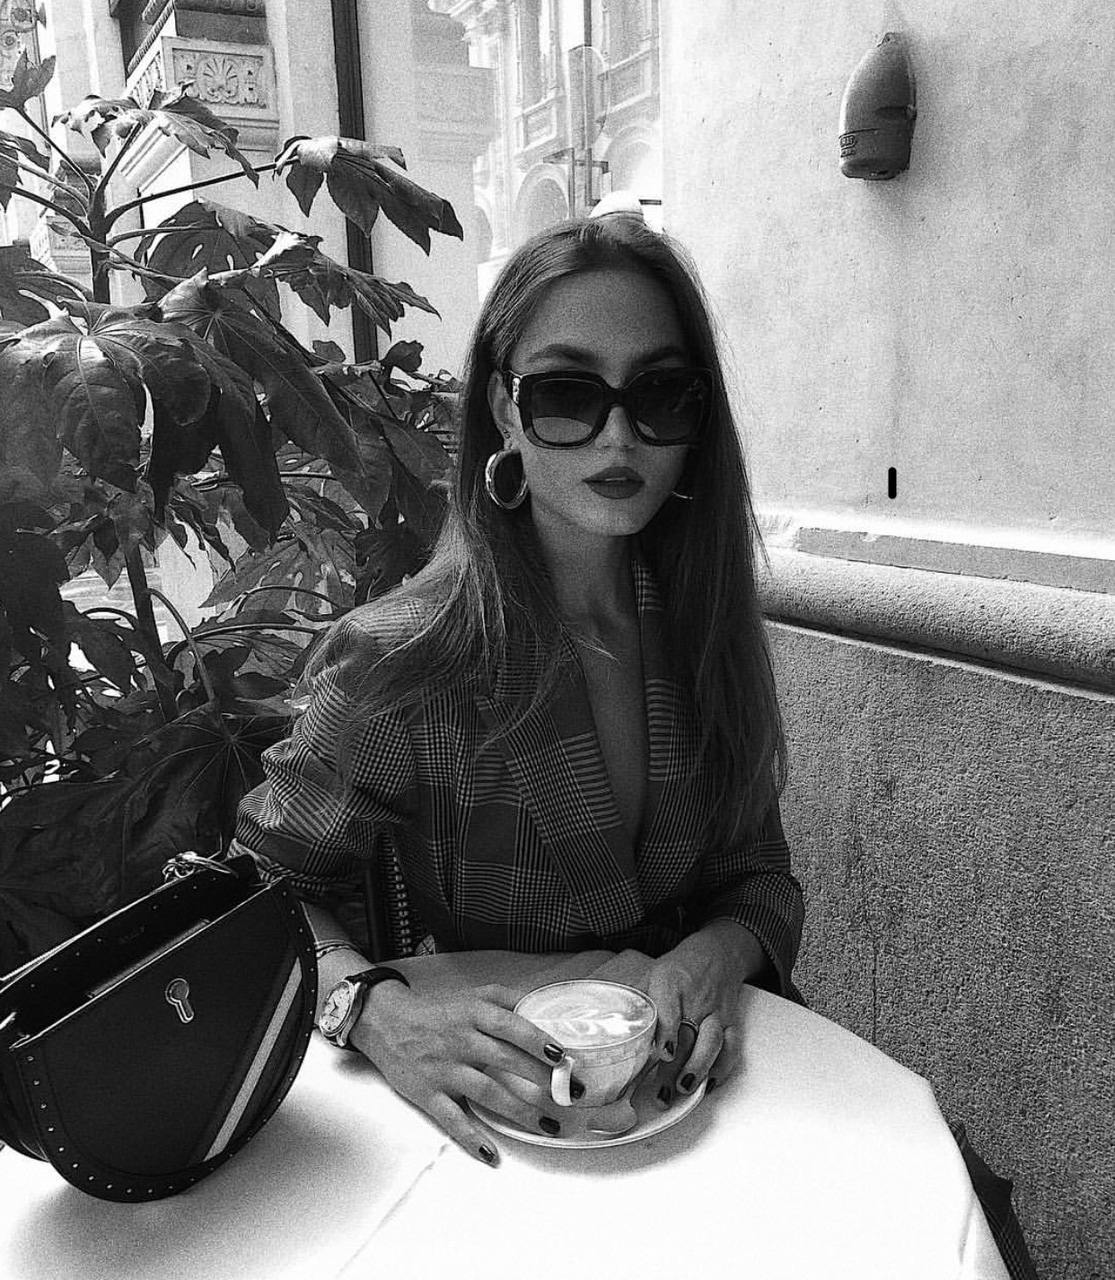 sunglasses, accessories and coffee